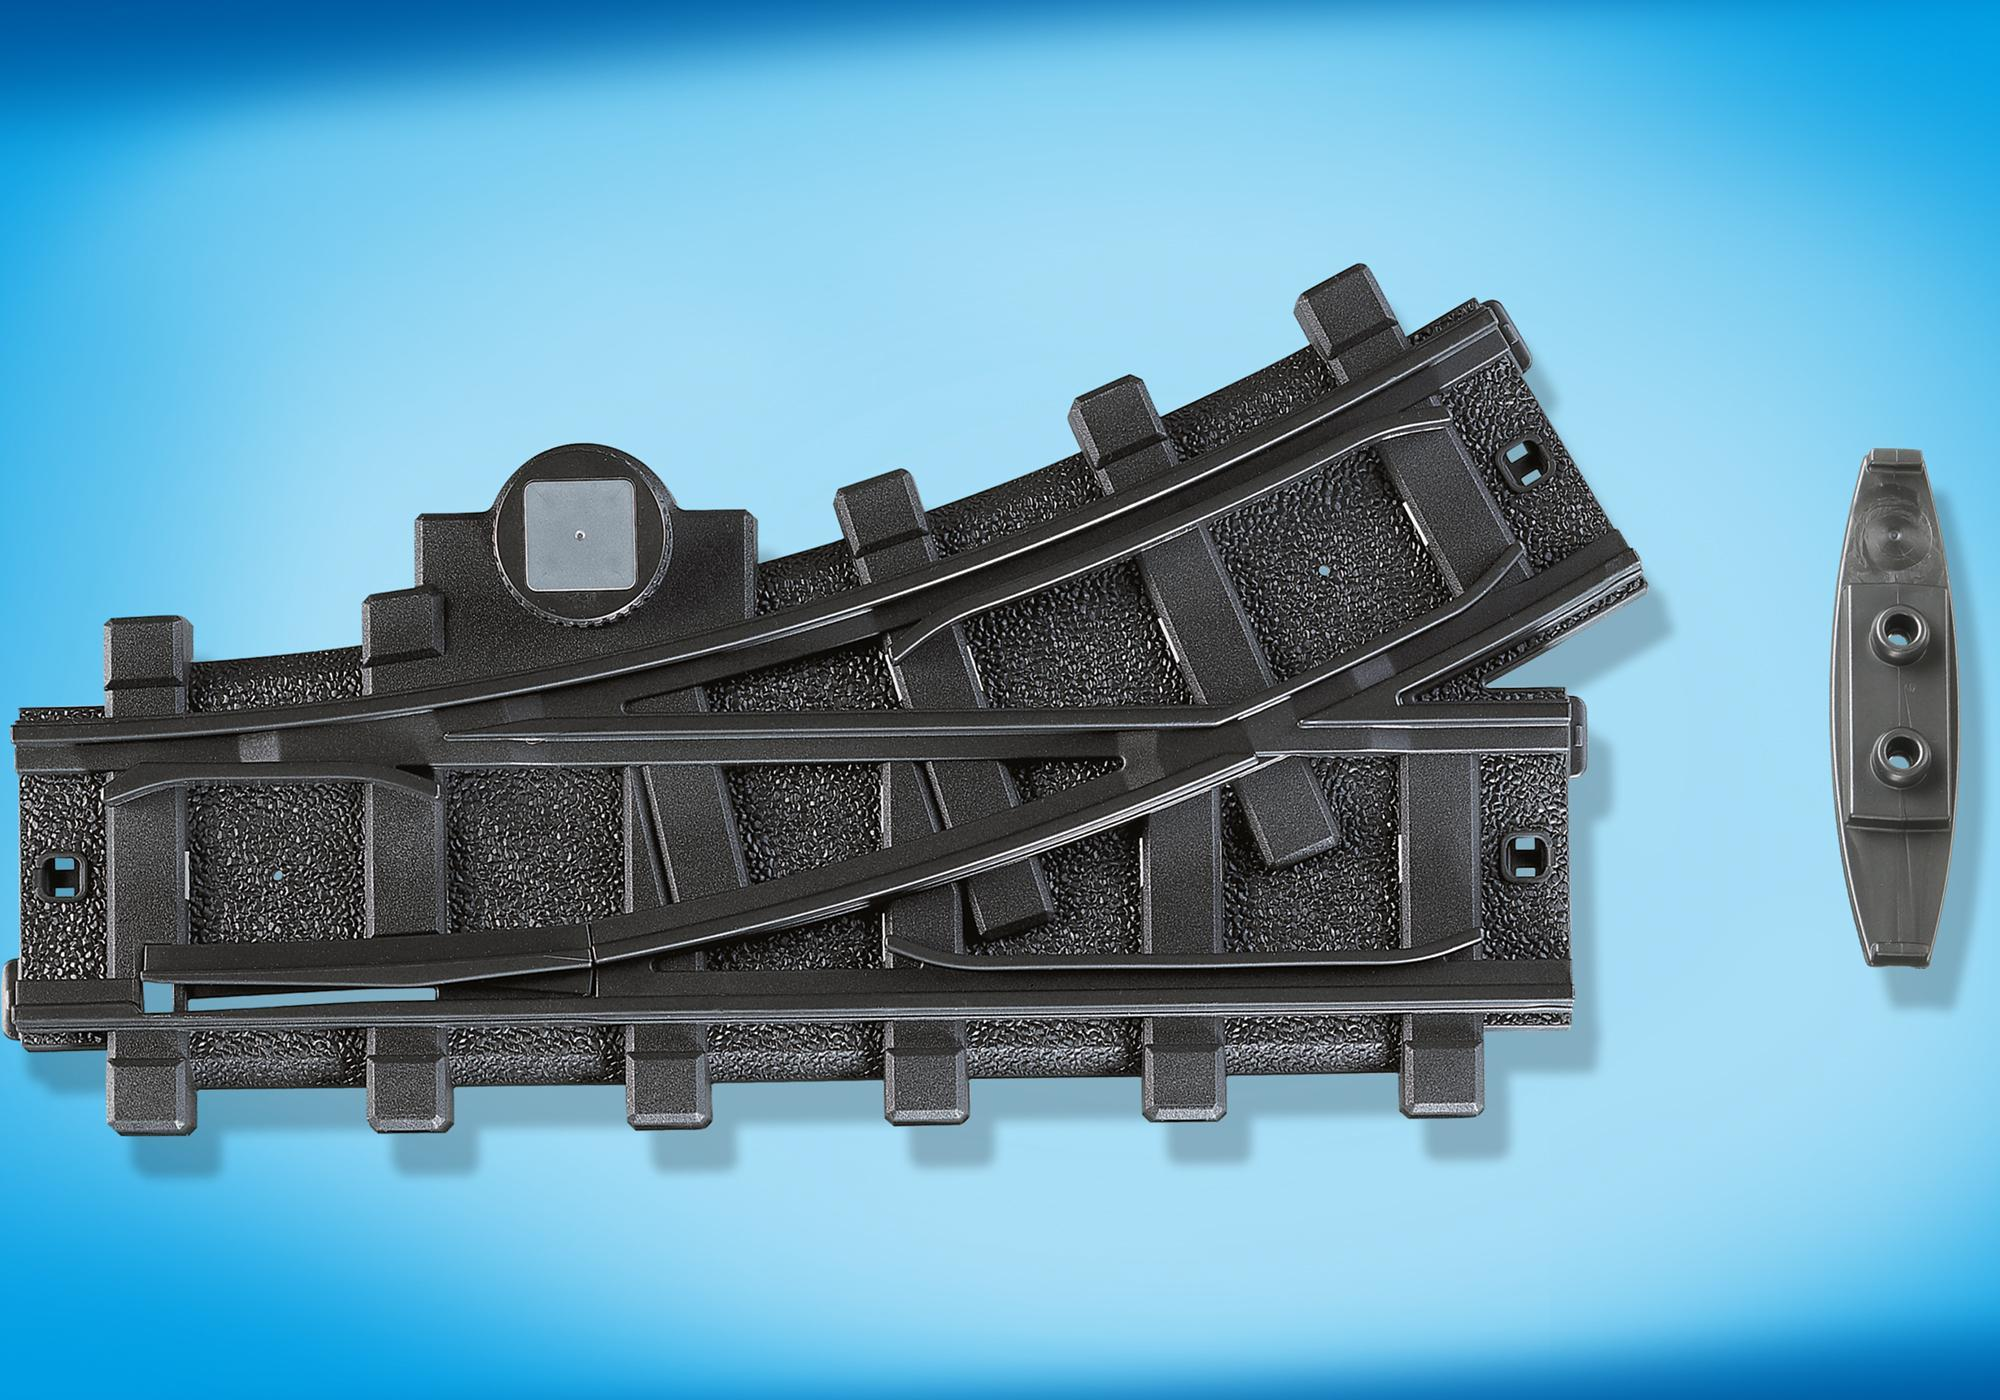 http://media.playmobil.com/i/playmobil/4388_product_detail/Weiche links